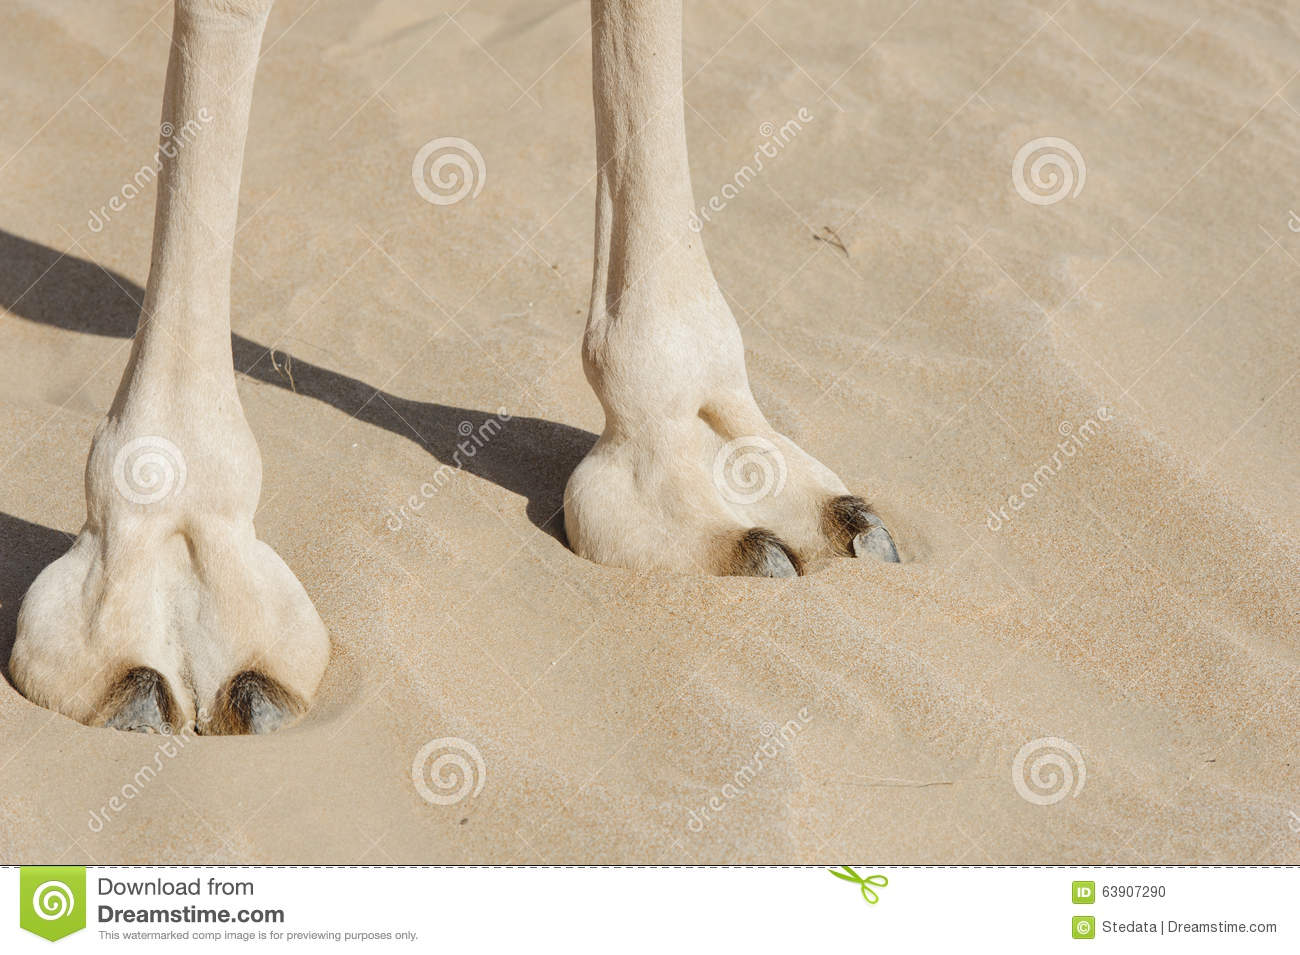 foot-prints_Camel Foot (large Leathery Pad) Stock Photo - Image of exploration, mammal: 63907290